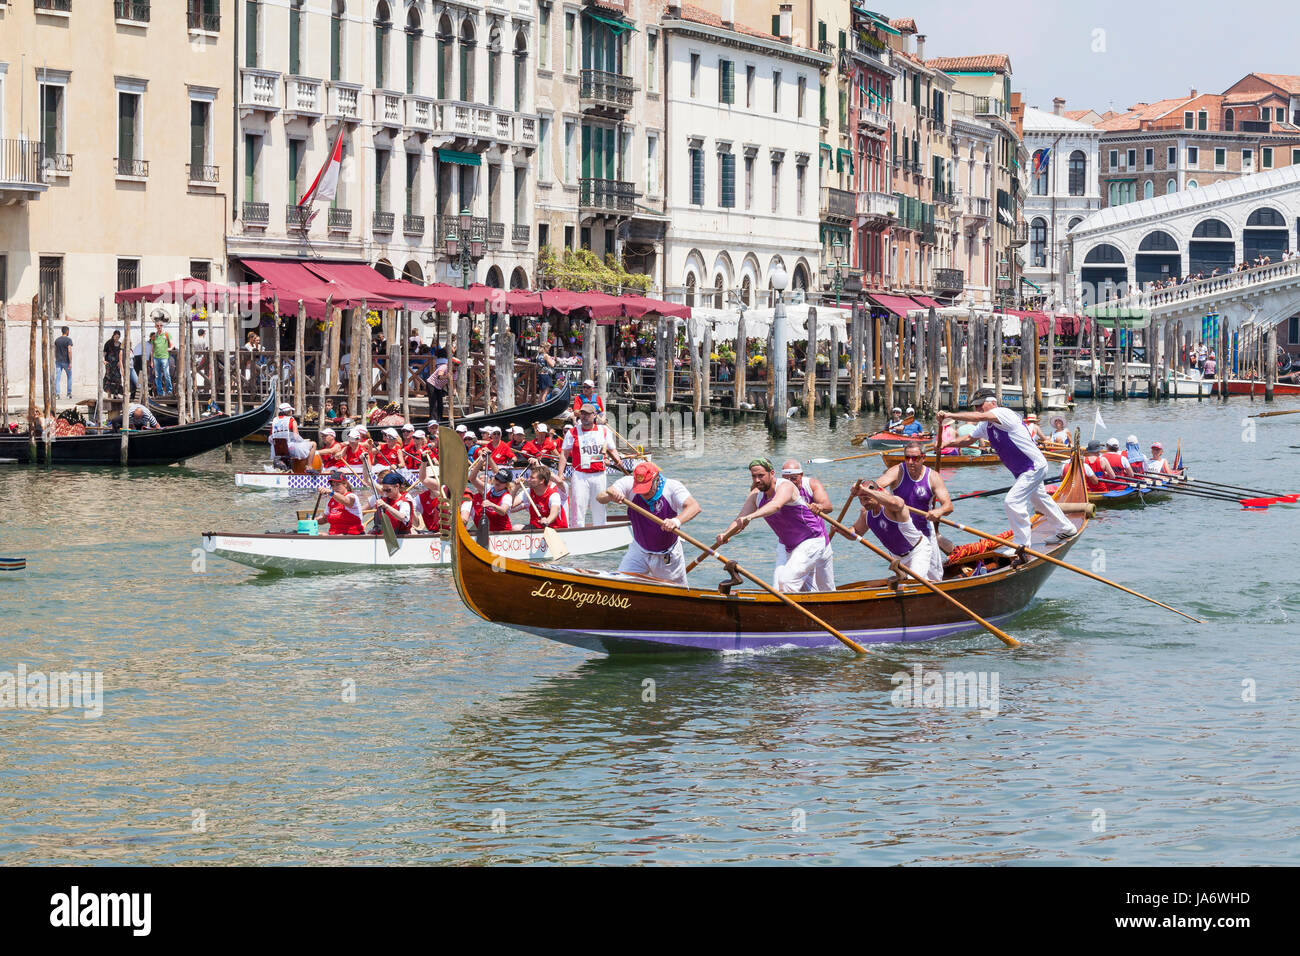 Venice, Veneto, Italy. 4th June 2017. Participants in the 43rd Vogalonga Regatta race towards the line in their - Stock Image